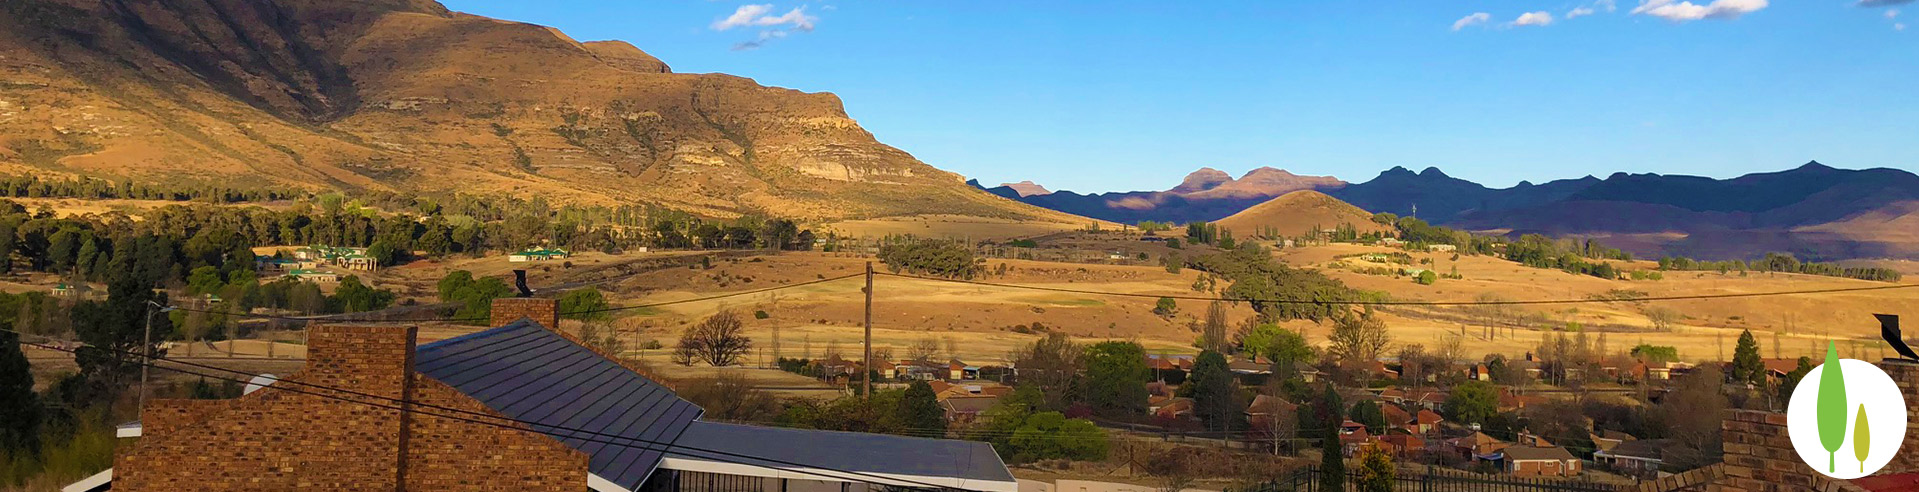 forever clarens